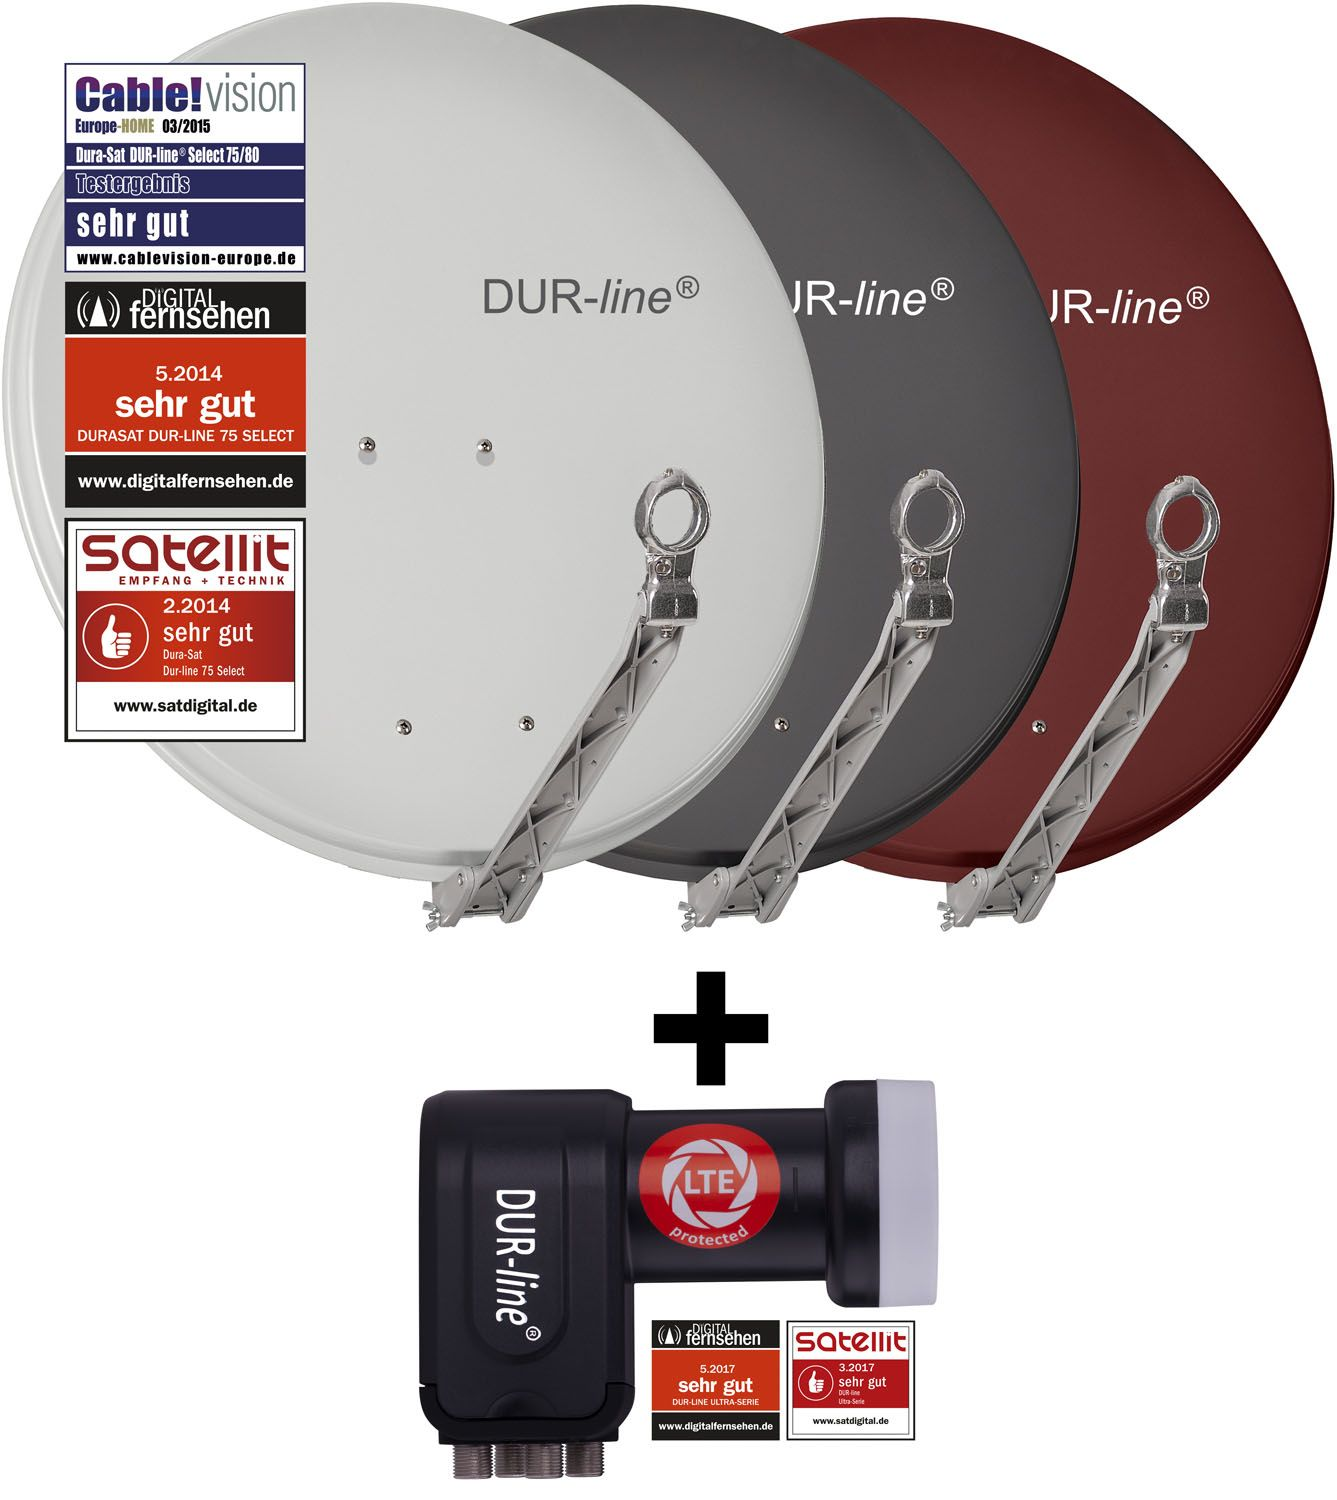 DUR-line Select 75/80 + +Ultra Quad LNB